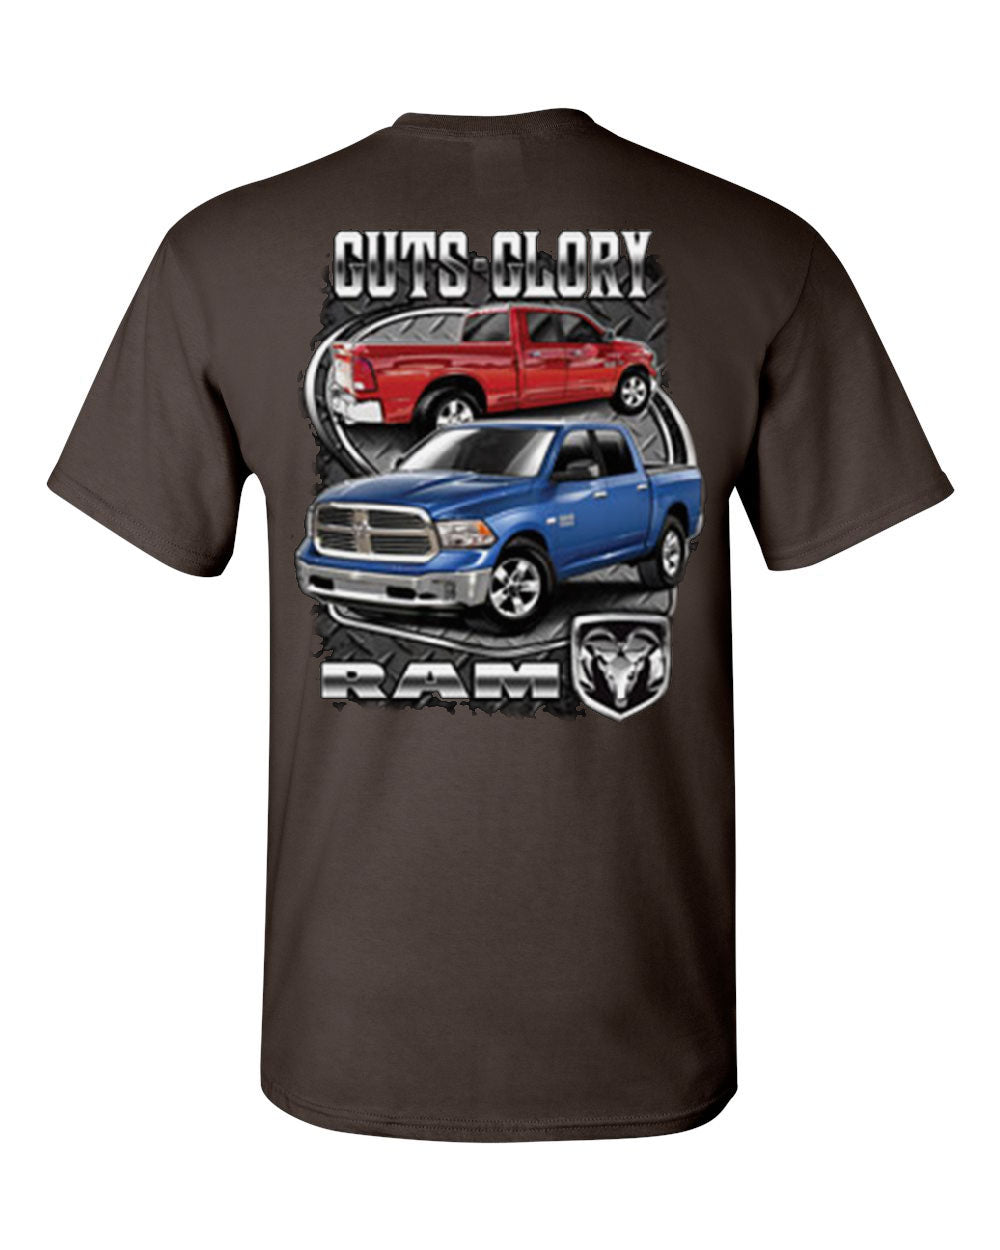 Dodge Ram Guts And Glory T Shirt Dodge Truck Licensed Tee